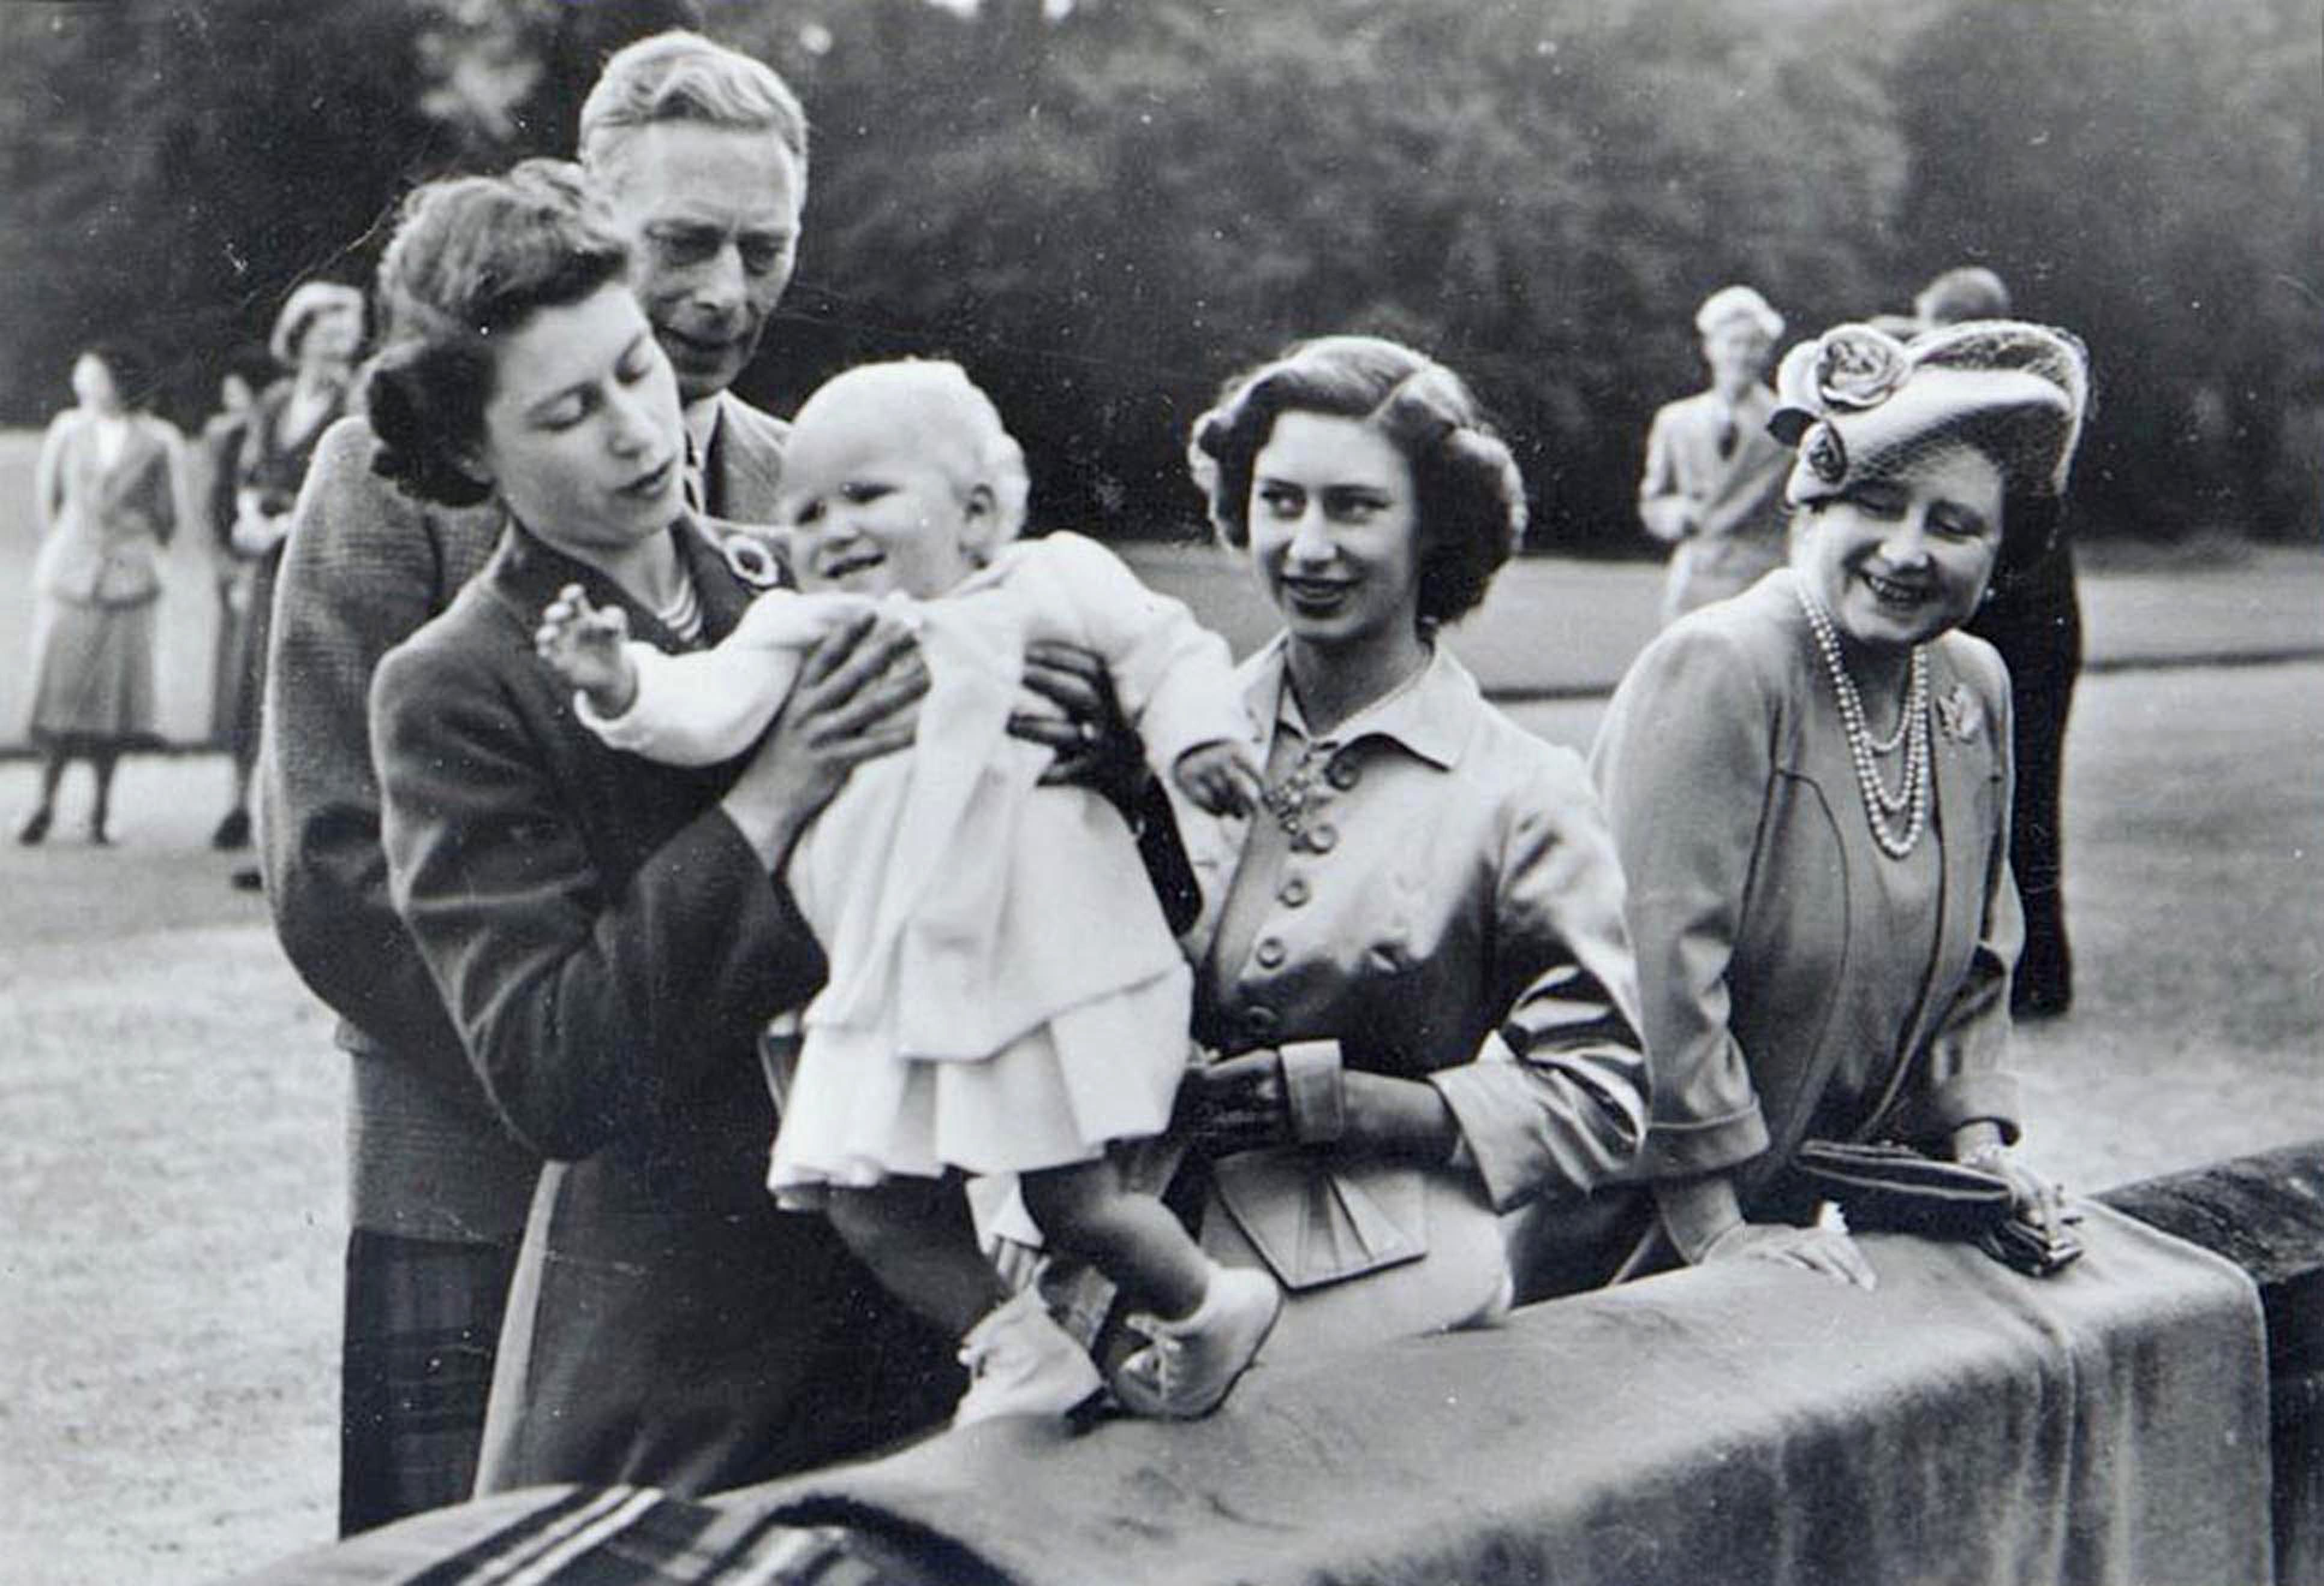 VARIOUS BRITISH ROYALTY - 1950S